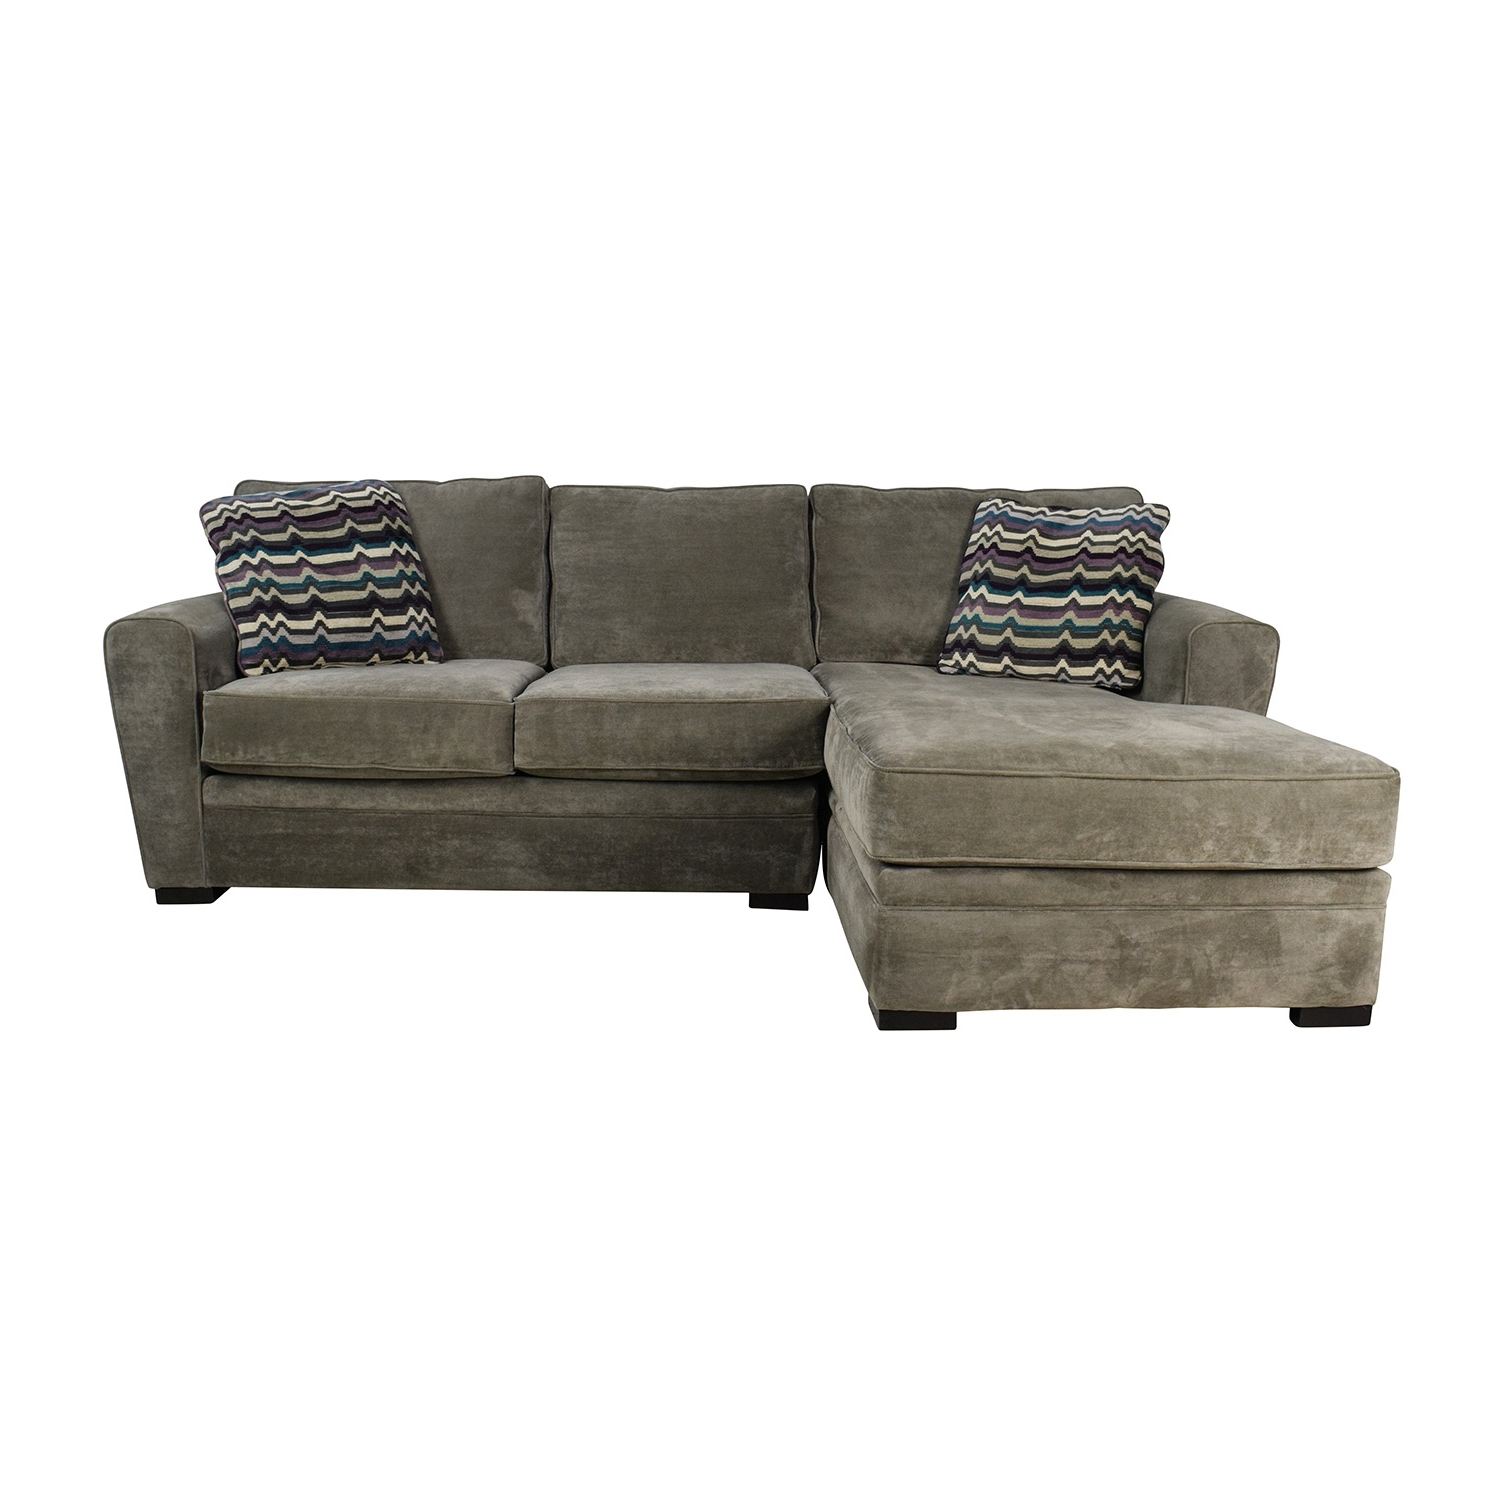 [%52% Off – Raymour & Flanigan Raymour & Flanigan Artemis Ii With Trendy Raymour And Flanigan Sectional Sofas|Raymour And Flanigan Sectional Sofas Throughout Newest 52% Off – Raymour & Flanigan Raymour & Flanigan Artemis Ii|Most Up To Date Raymour And Flanigan Sectional Sofas In 52% Off – Raymour & Flanigan Raymour & Flanigan Artemis Ii|Newest 52% Off – Raymour & Flanigan Raymour & Flanigan Artemis Ii Within Raymour And Flanigan Sectional Sofas%] (View 4 of 15)